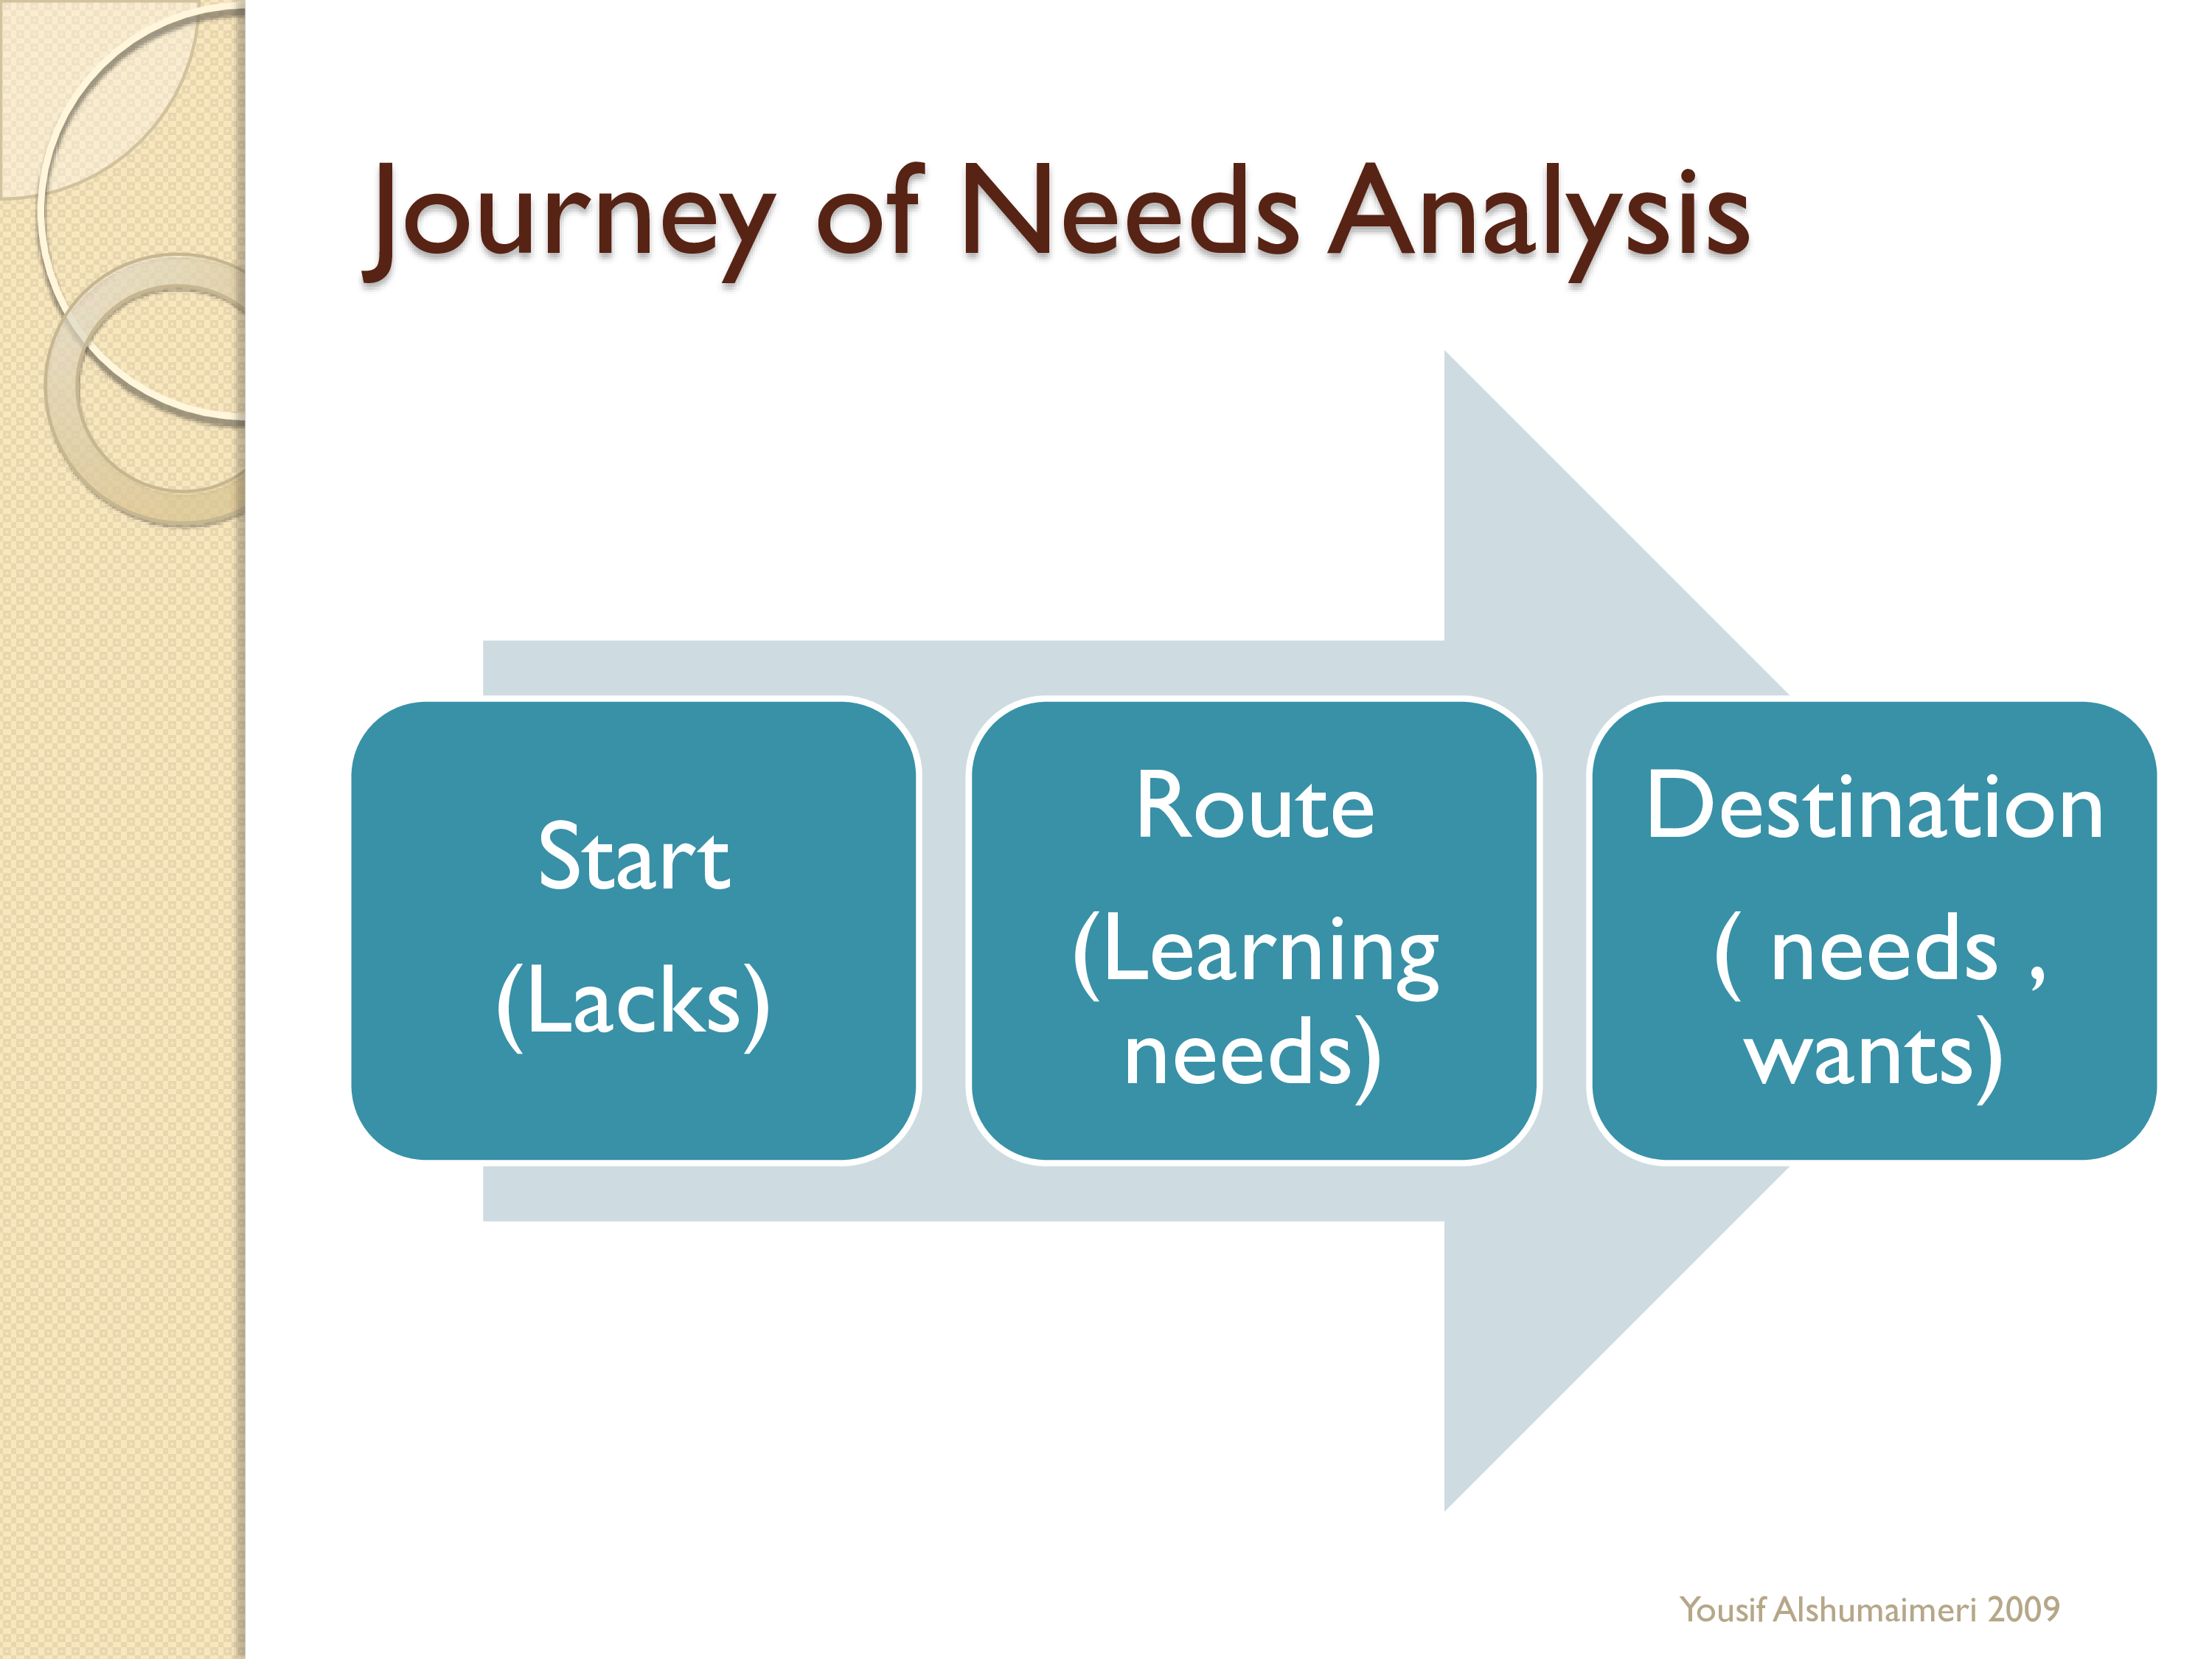 Basic Needs Analysis Presentation main image